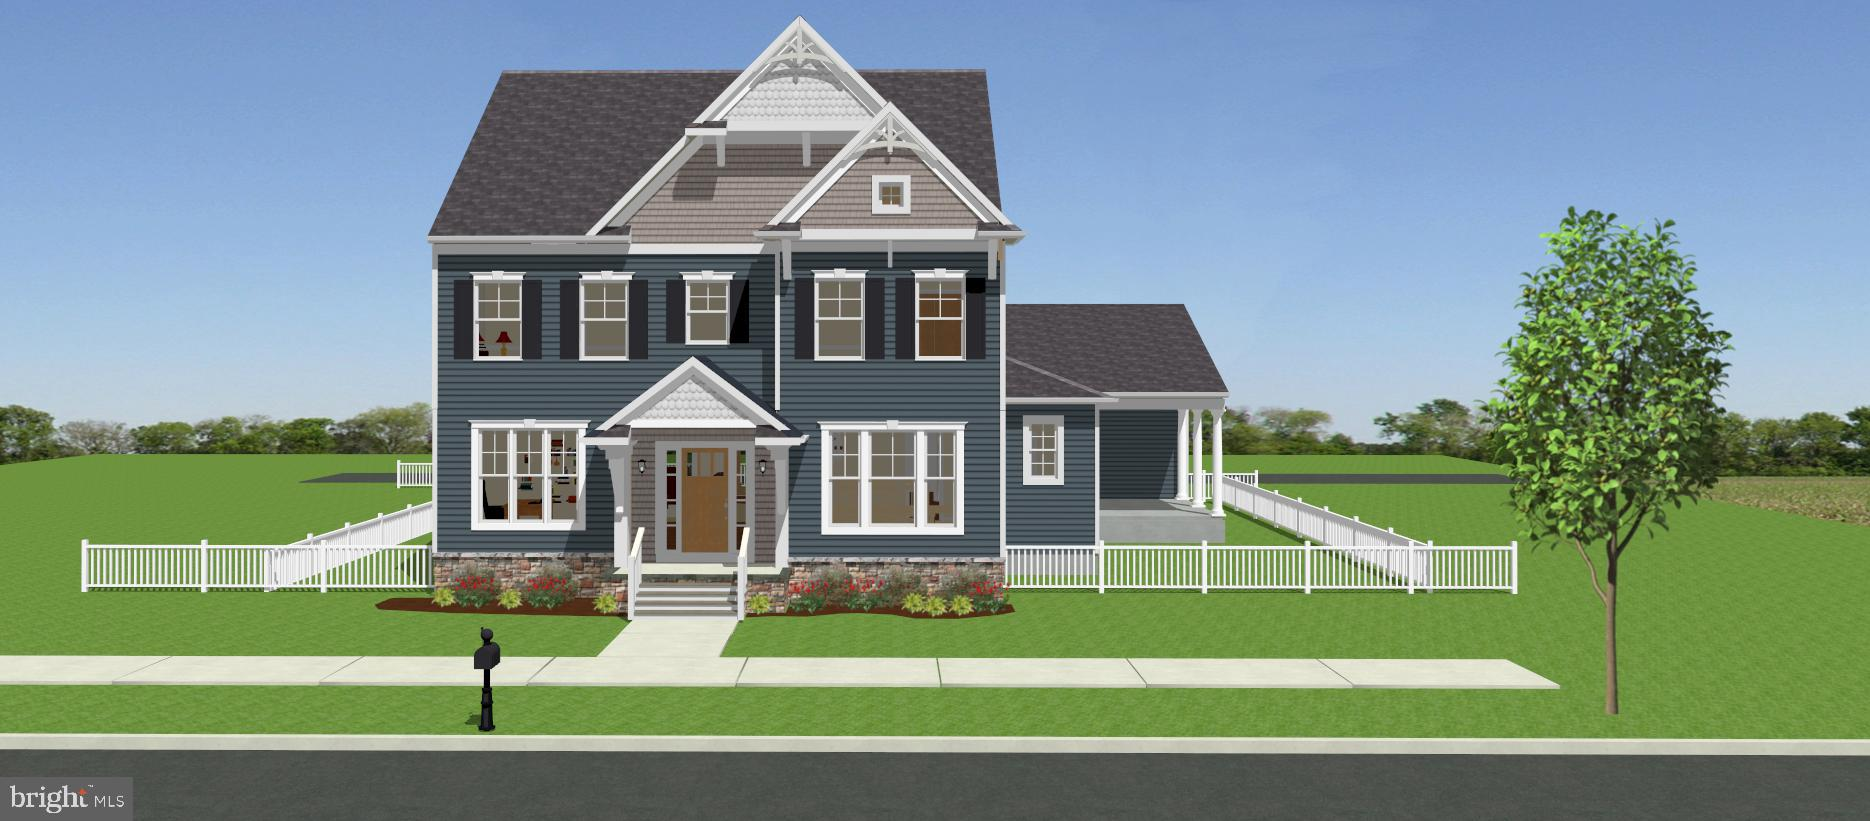 Appraisers - Call listing agent for more information.For room dimensions and floorplans see www.Lifestylehomes.us.